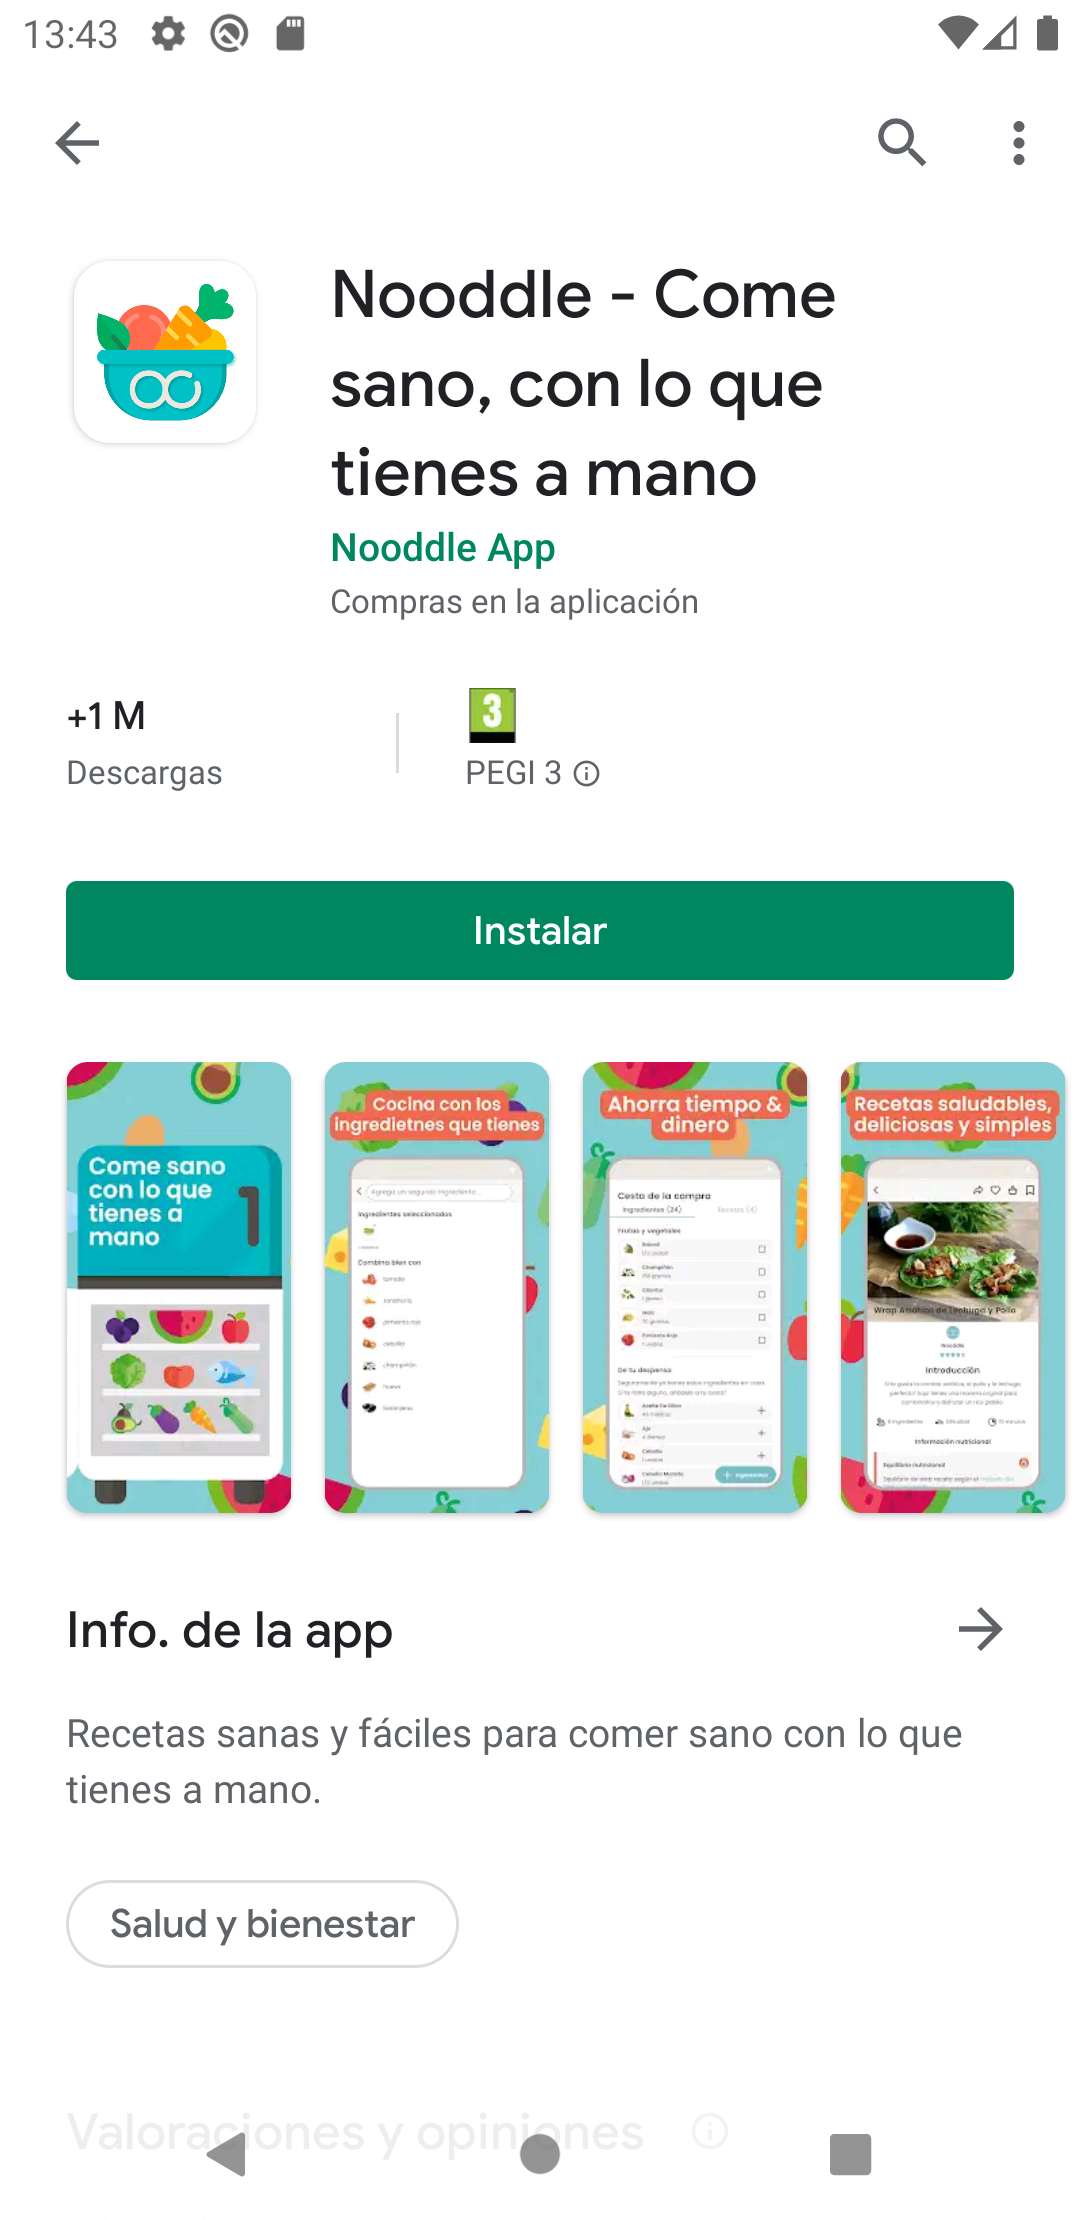 Nooddle App Android ASO